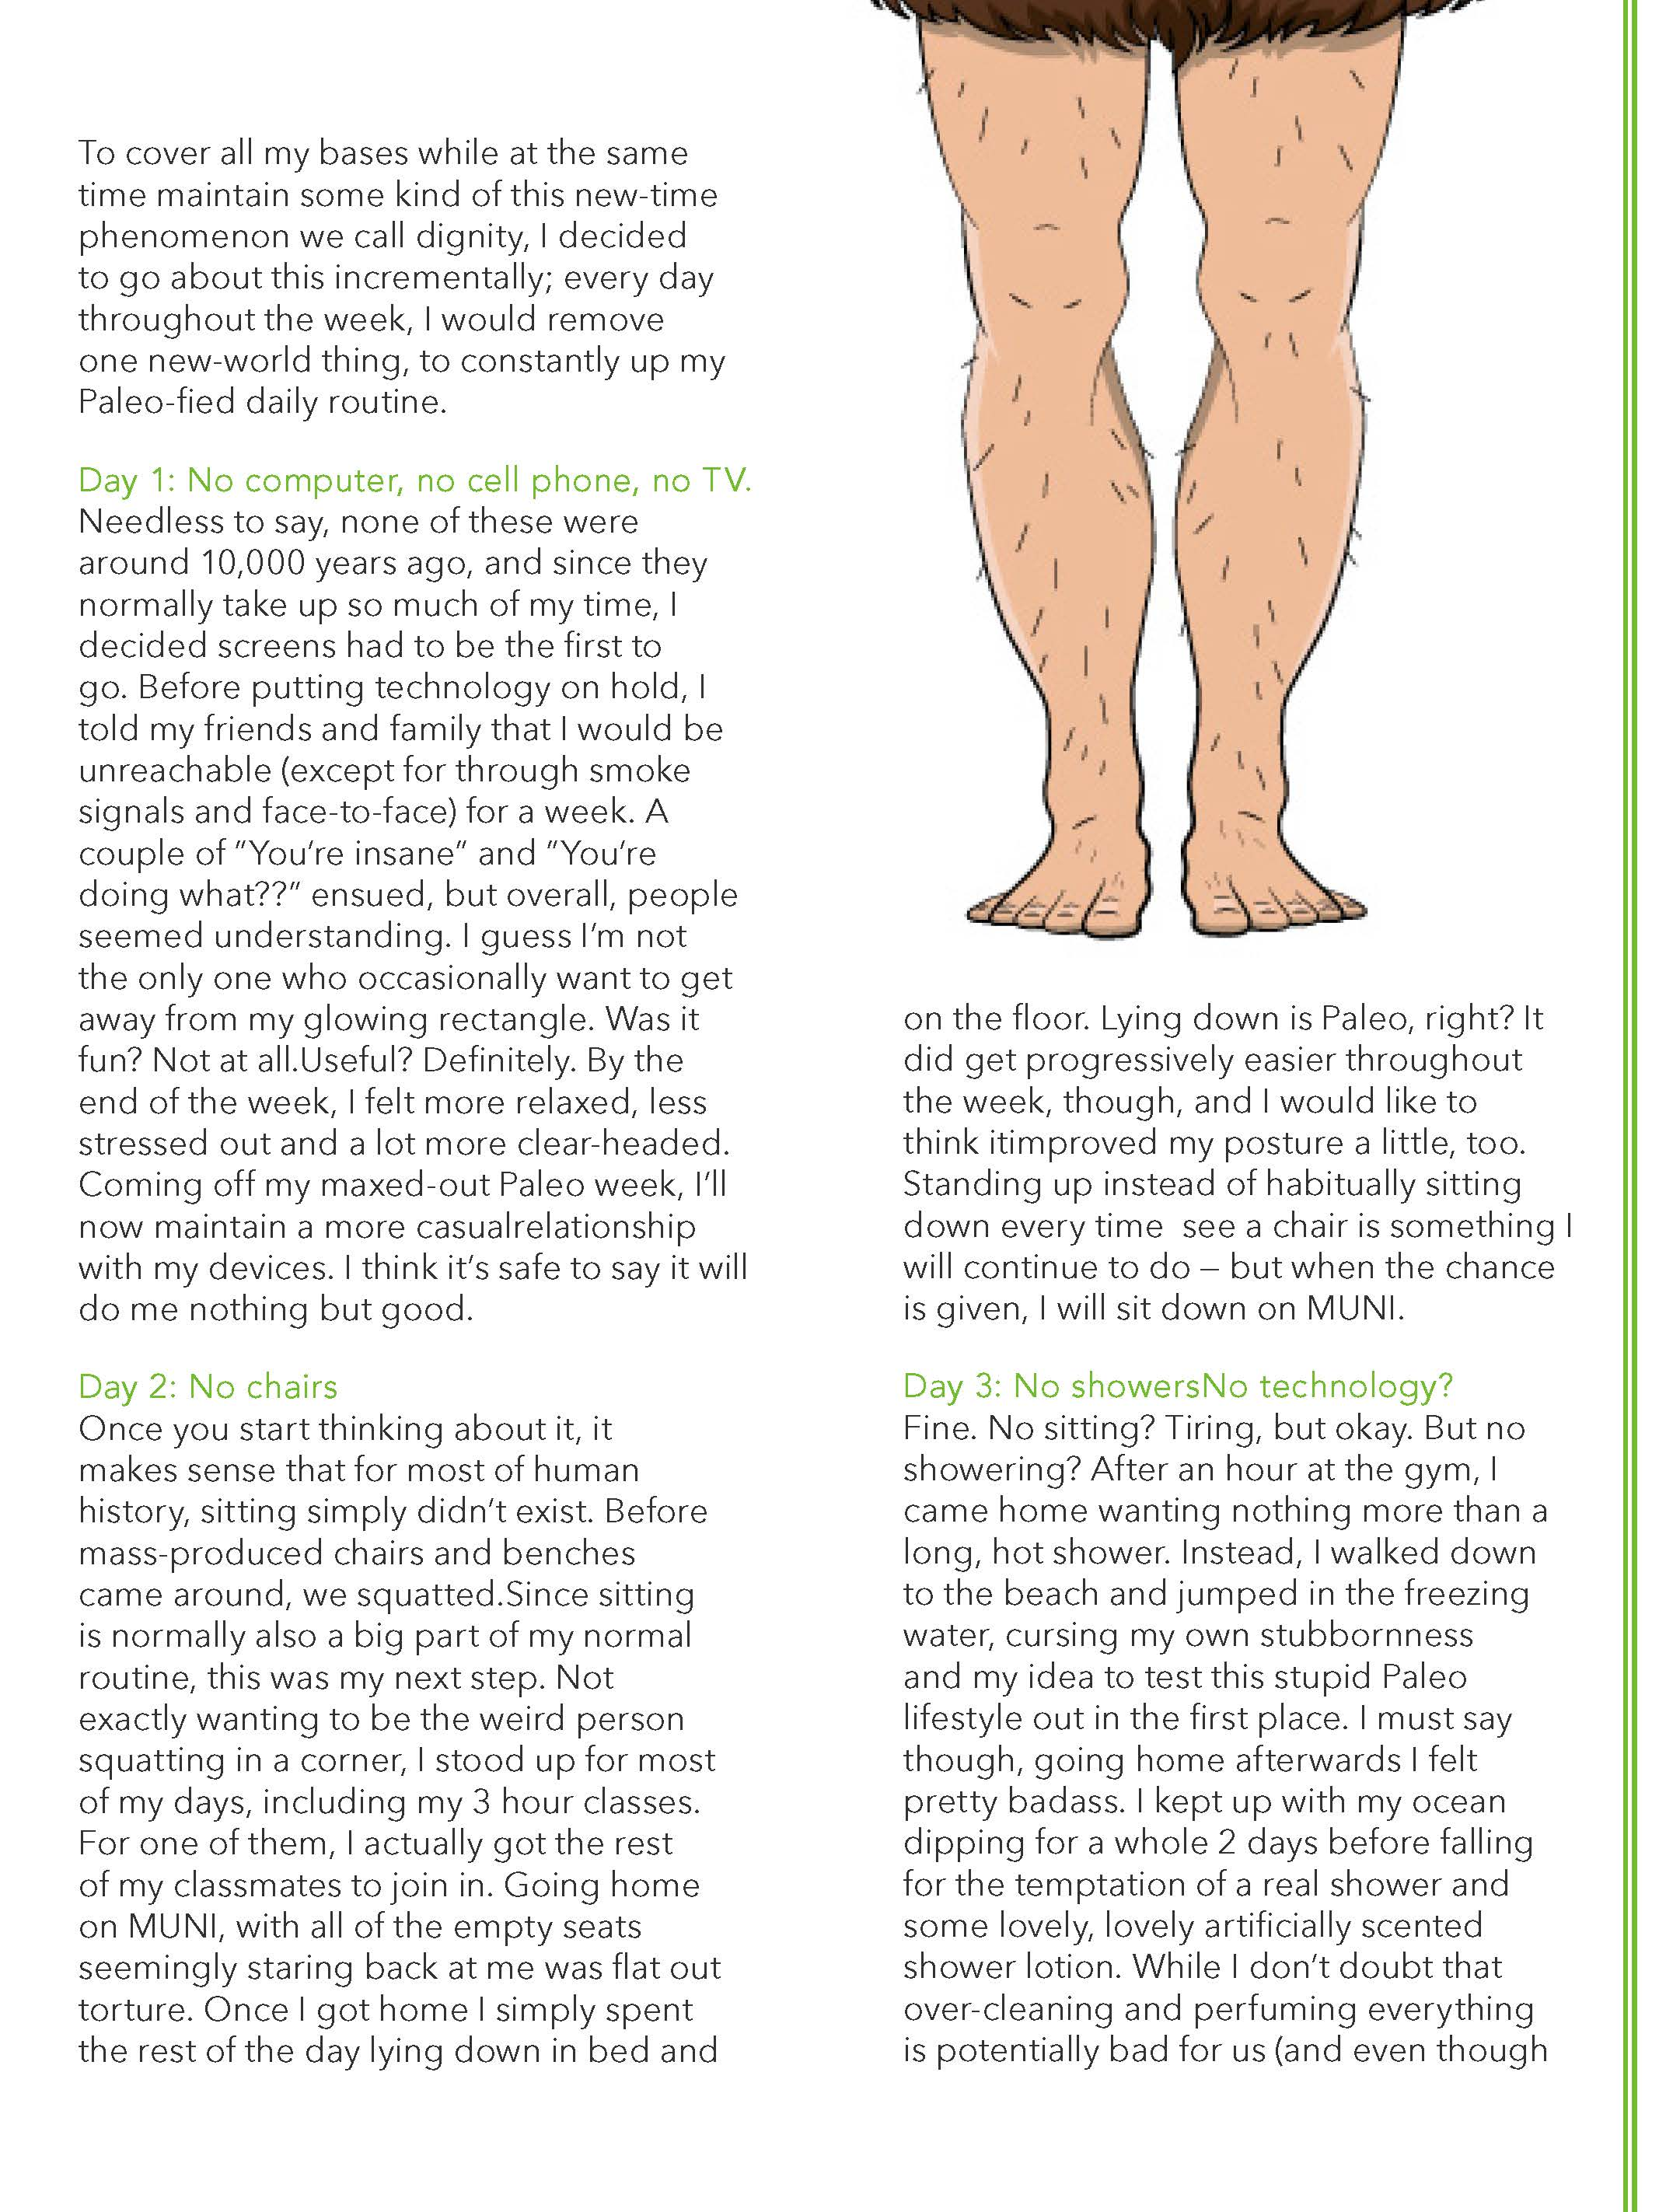 Paleo(Full Article)_Page_6